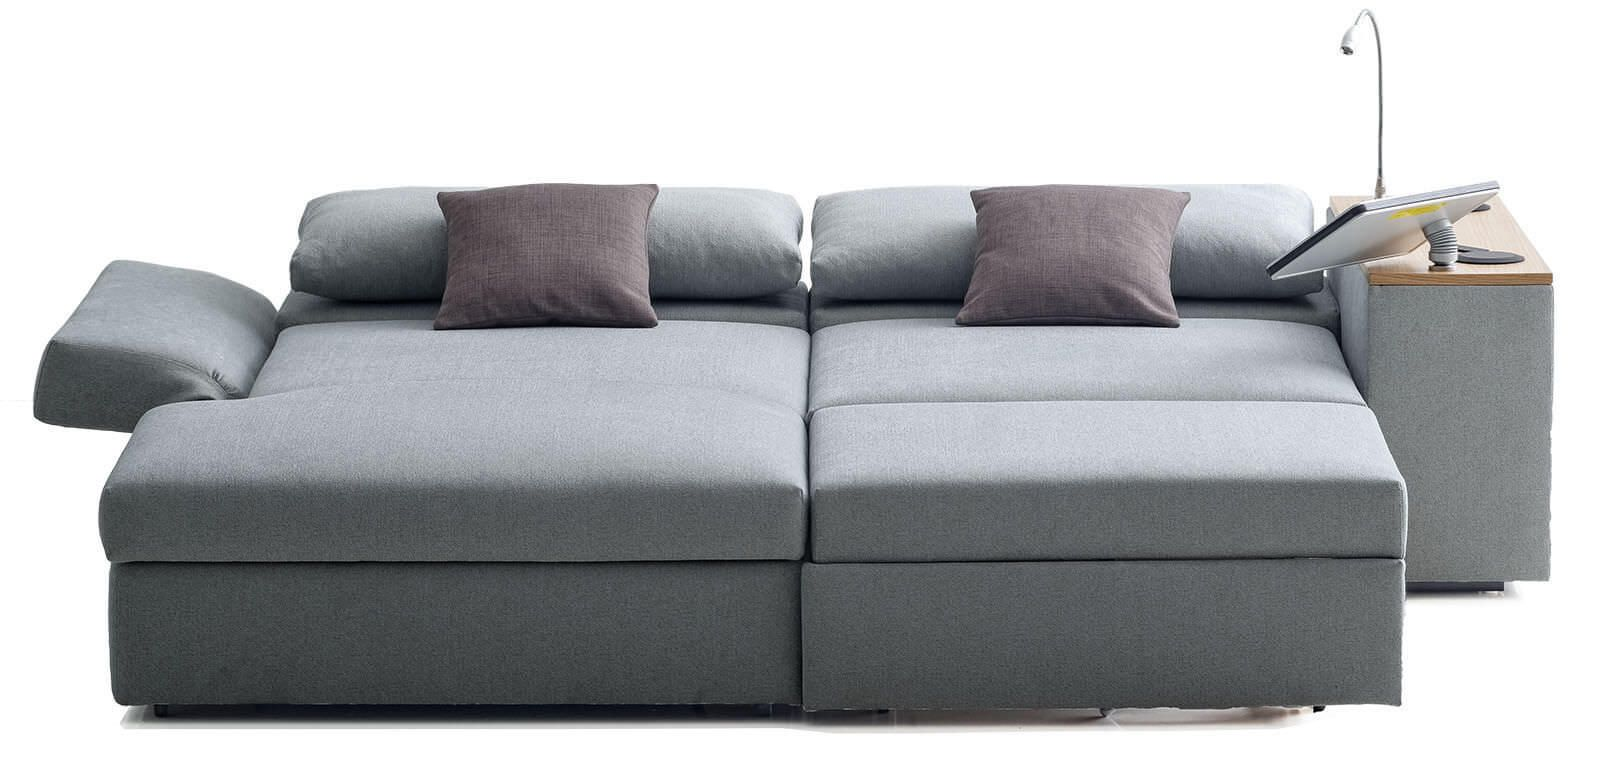 Corner Sofa Bed Contemporary Textile Confetto By Franz